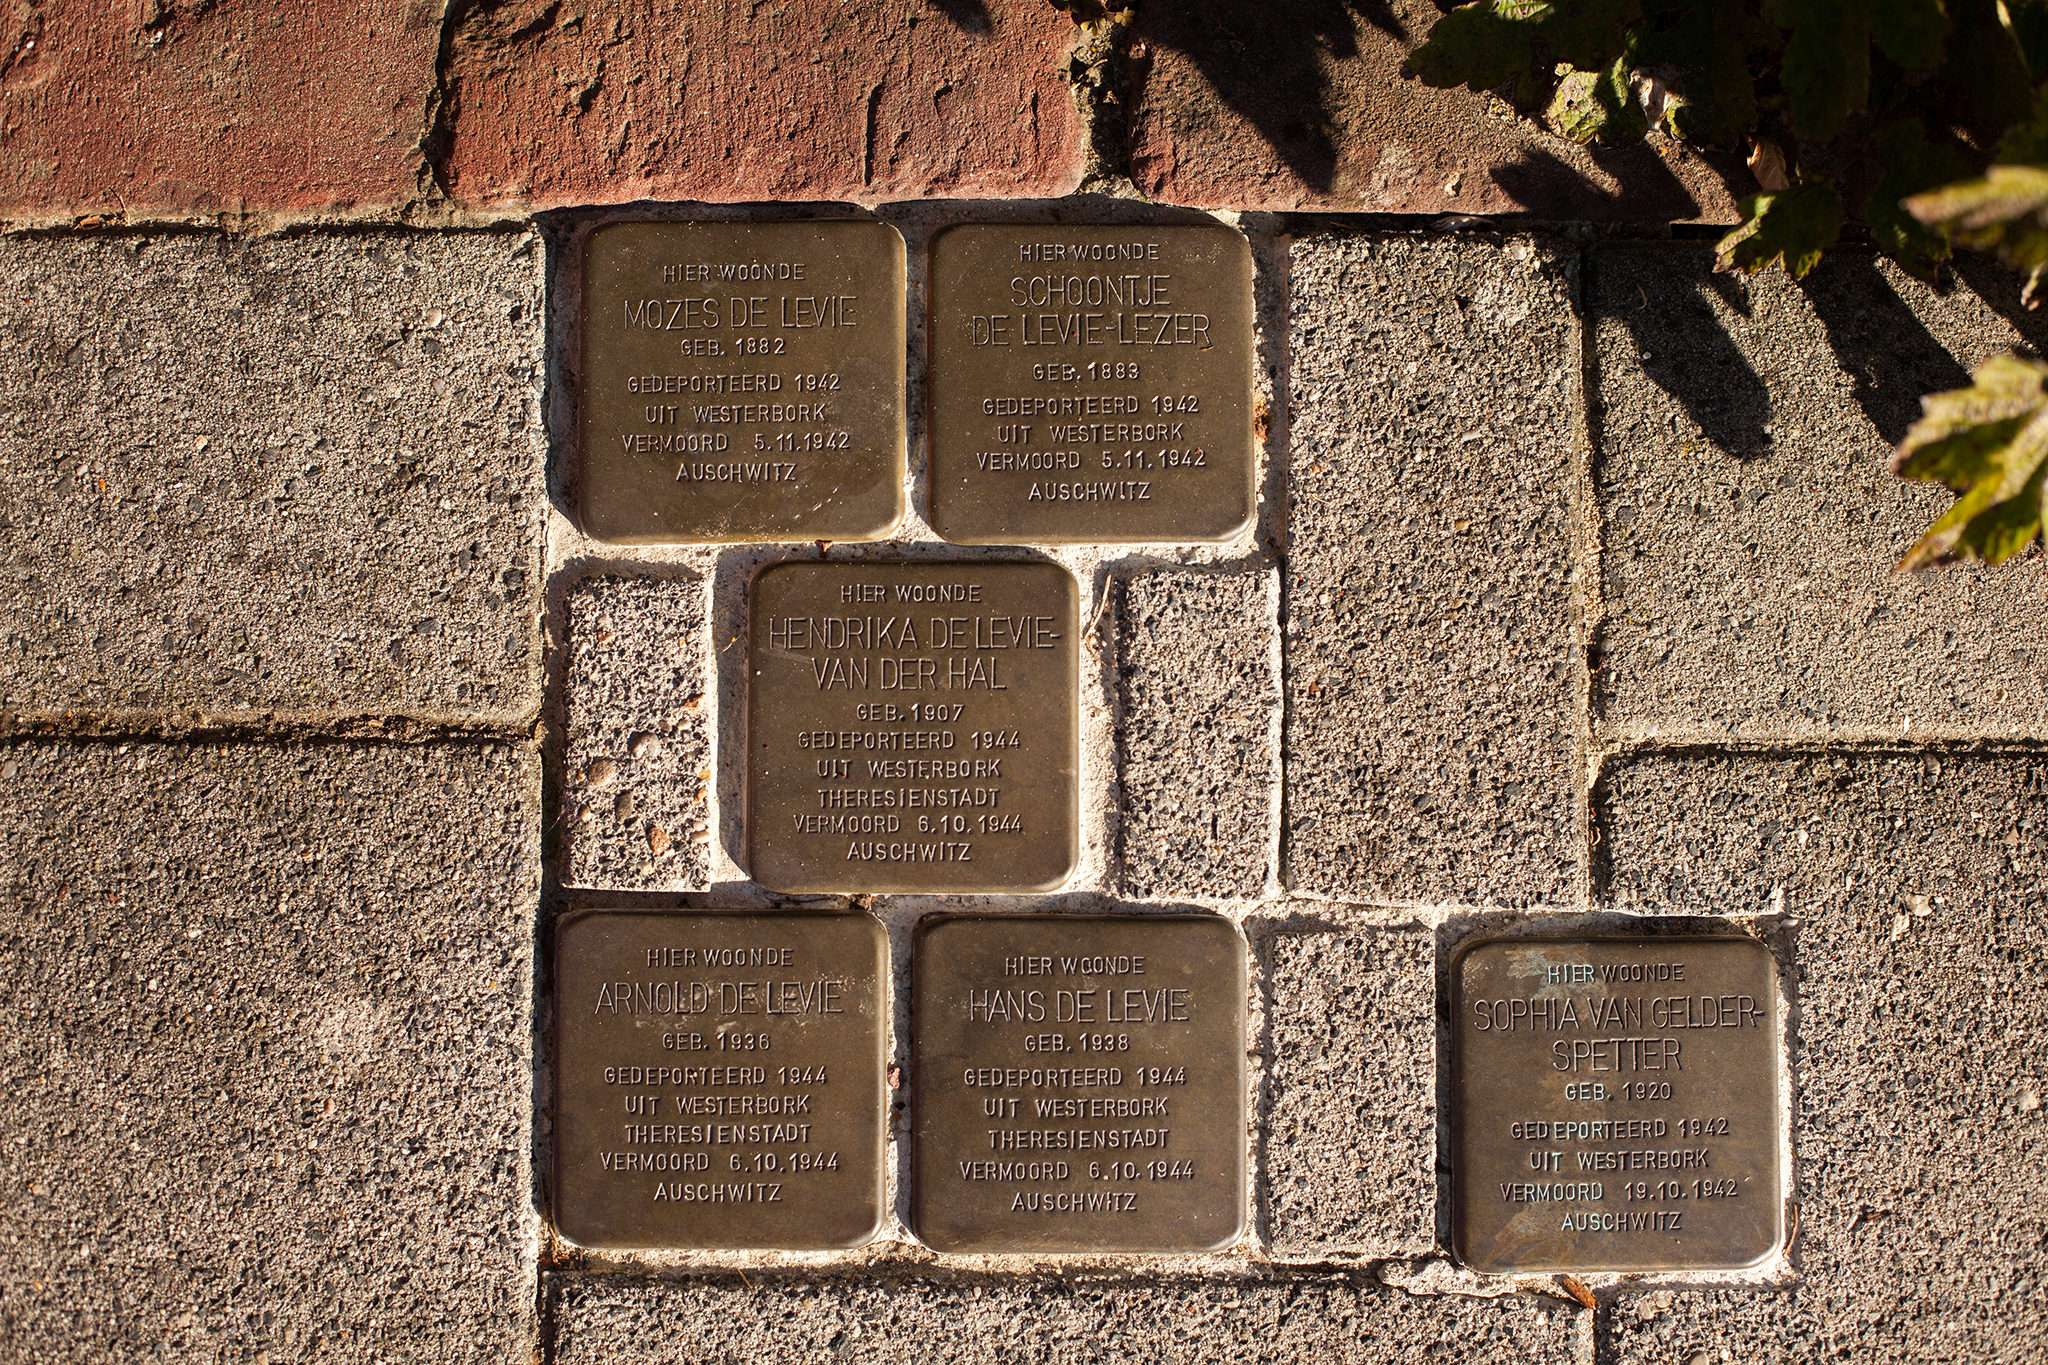 These show two parents deport to Westerbork in 1942, their three children were deported two years later in 1944. All were sent to Auschwitz where they were murdered. The Right stolperstein is for a 22 year old woman deported in 1942, first to Westerbork and then Auschwitz, where she as murdered.  IMAGE COURTESY OF SARAH HUGGARD PHOTOGRAPHY